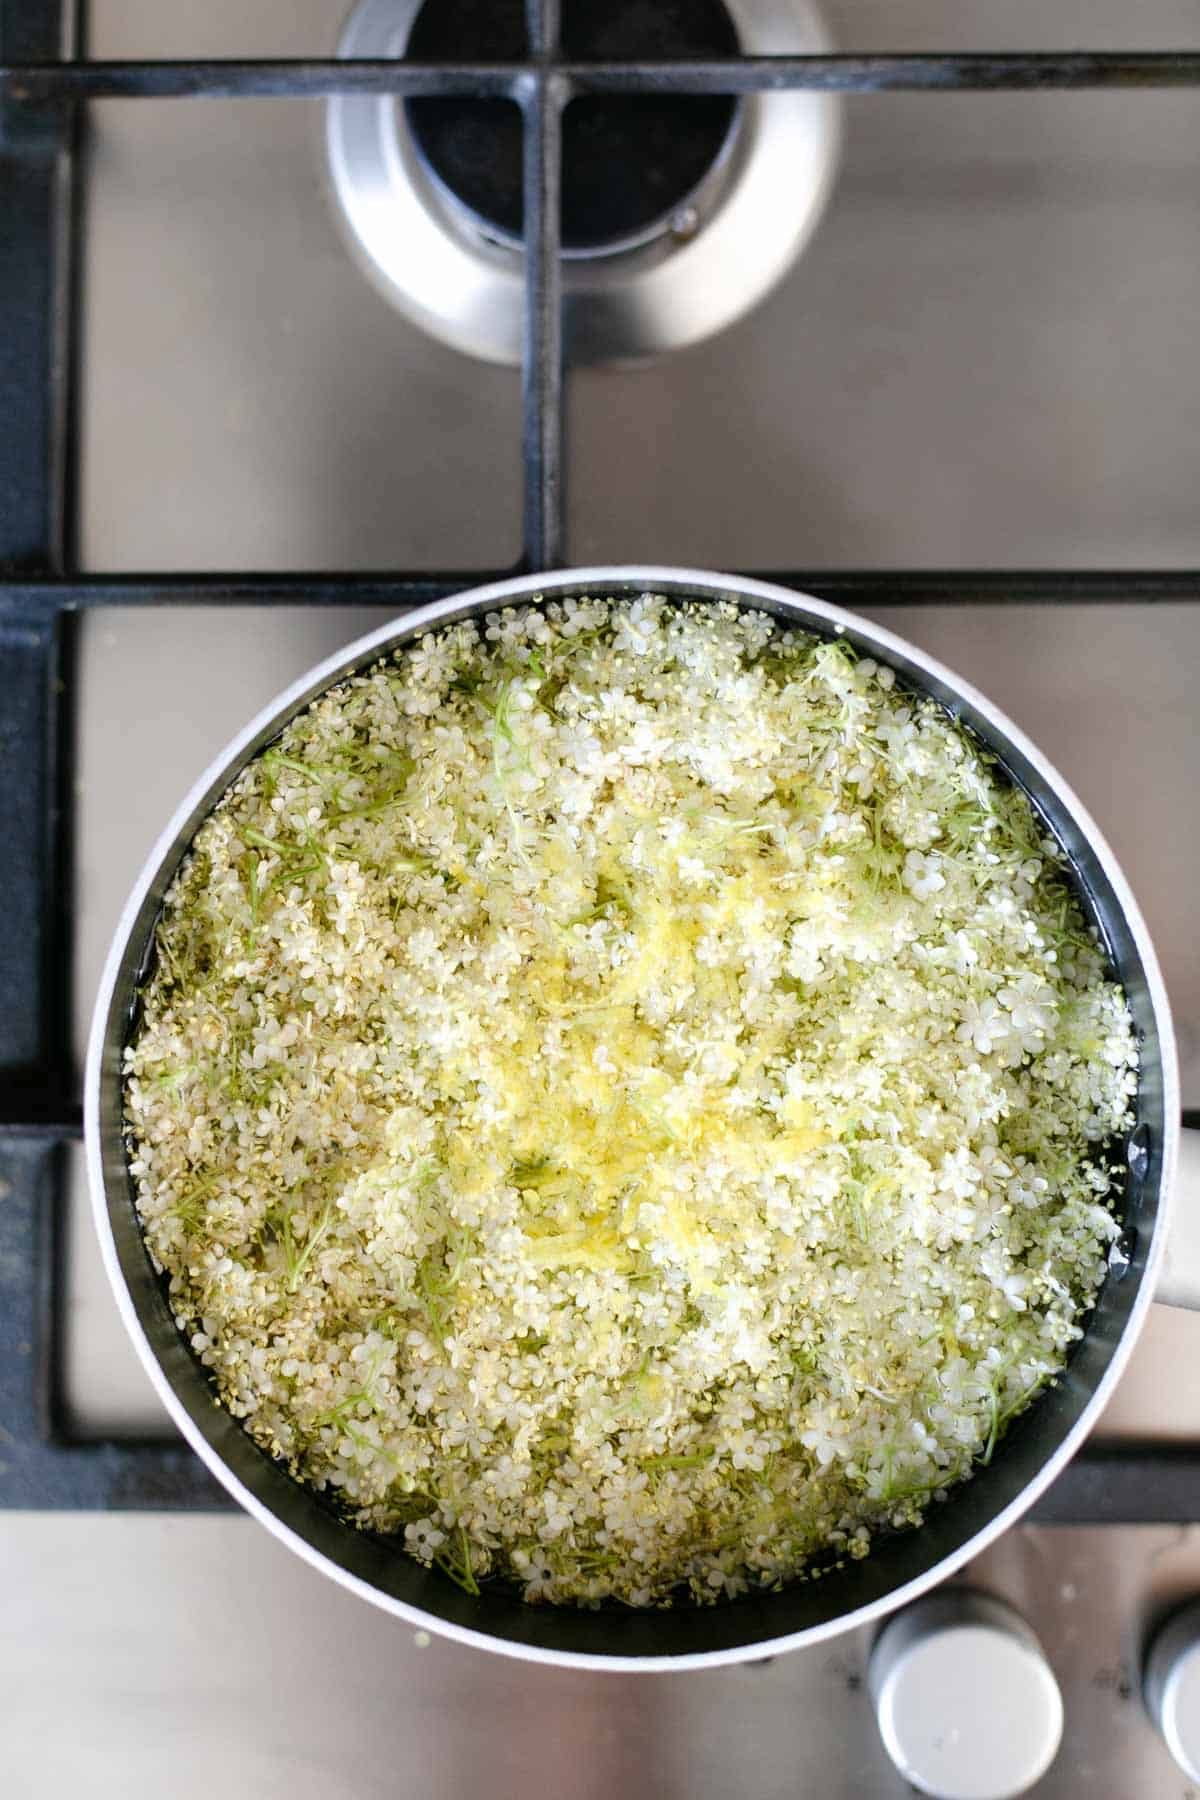 Classic elderflower cordial recipe. Refreshing and fragrant cordial, ideal for summer days! #elderflower #elderflowercordial #drinkrecipe | via @annabanana.co